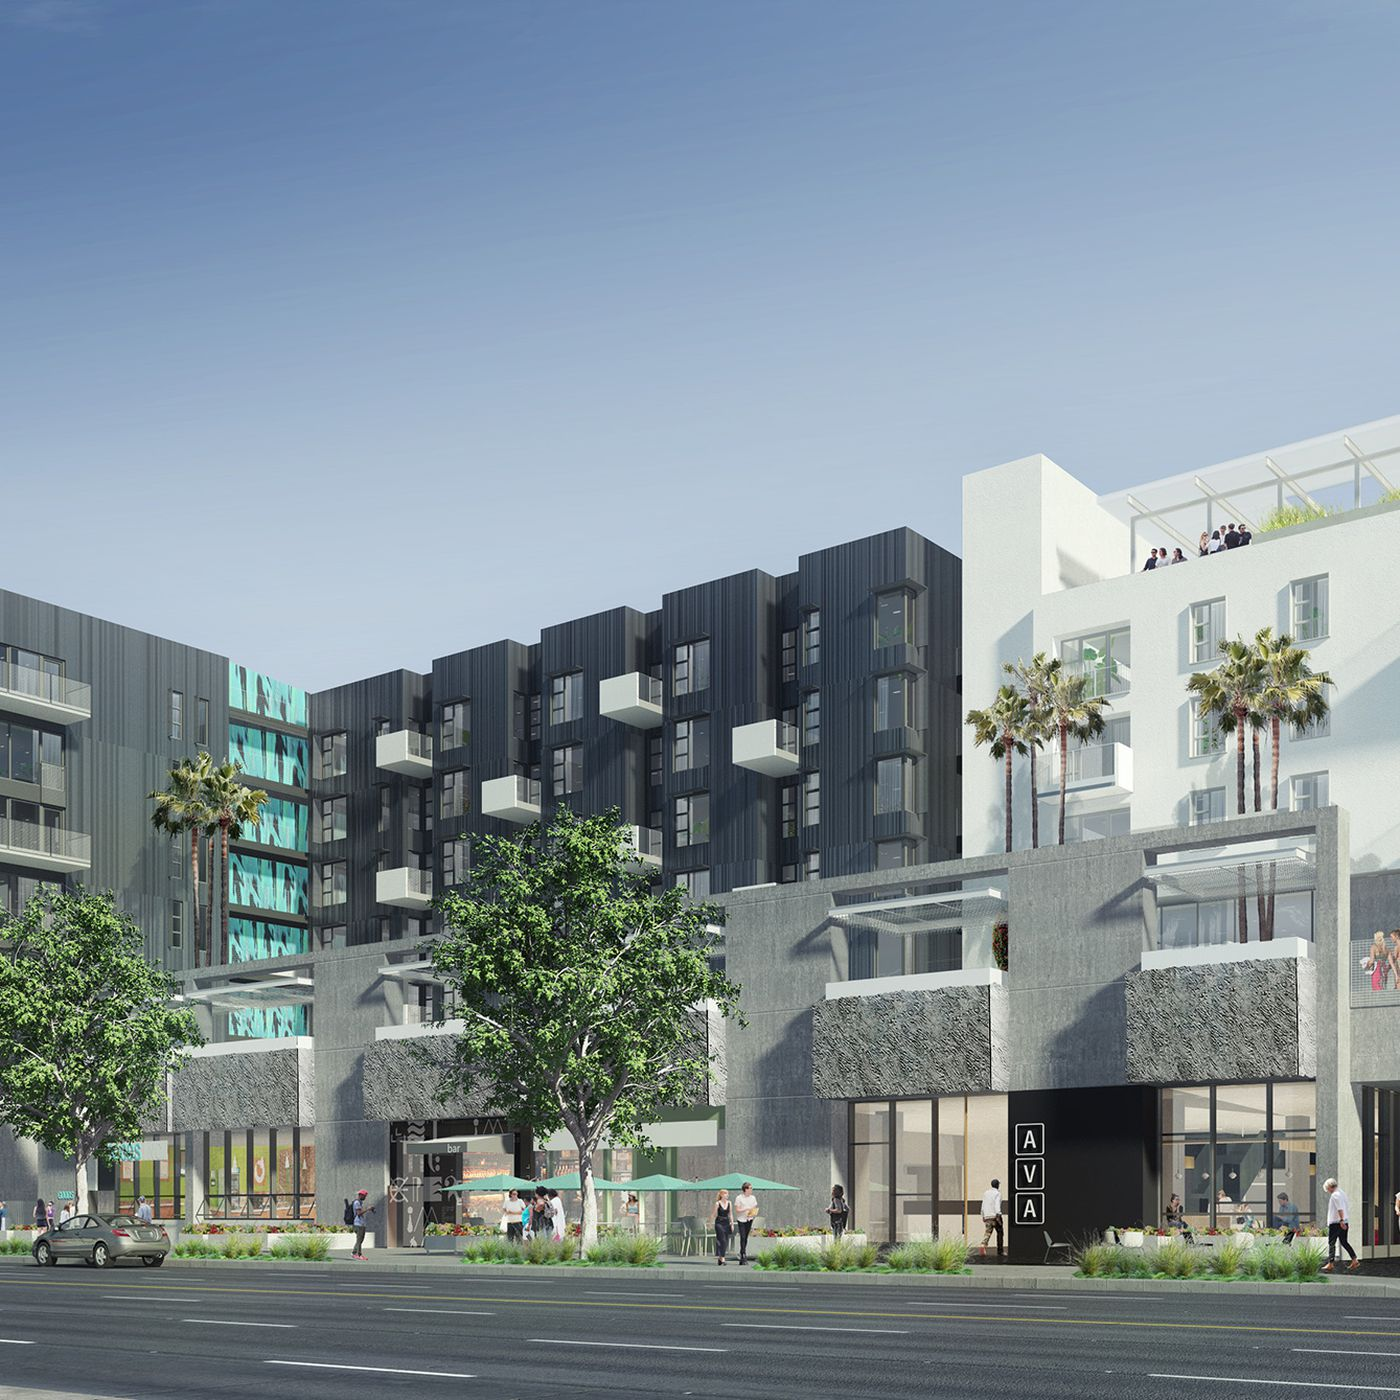 images avalonbay s mega development under construction in hollywood curbed la curbed la